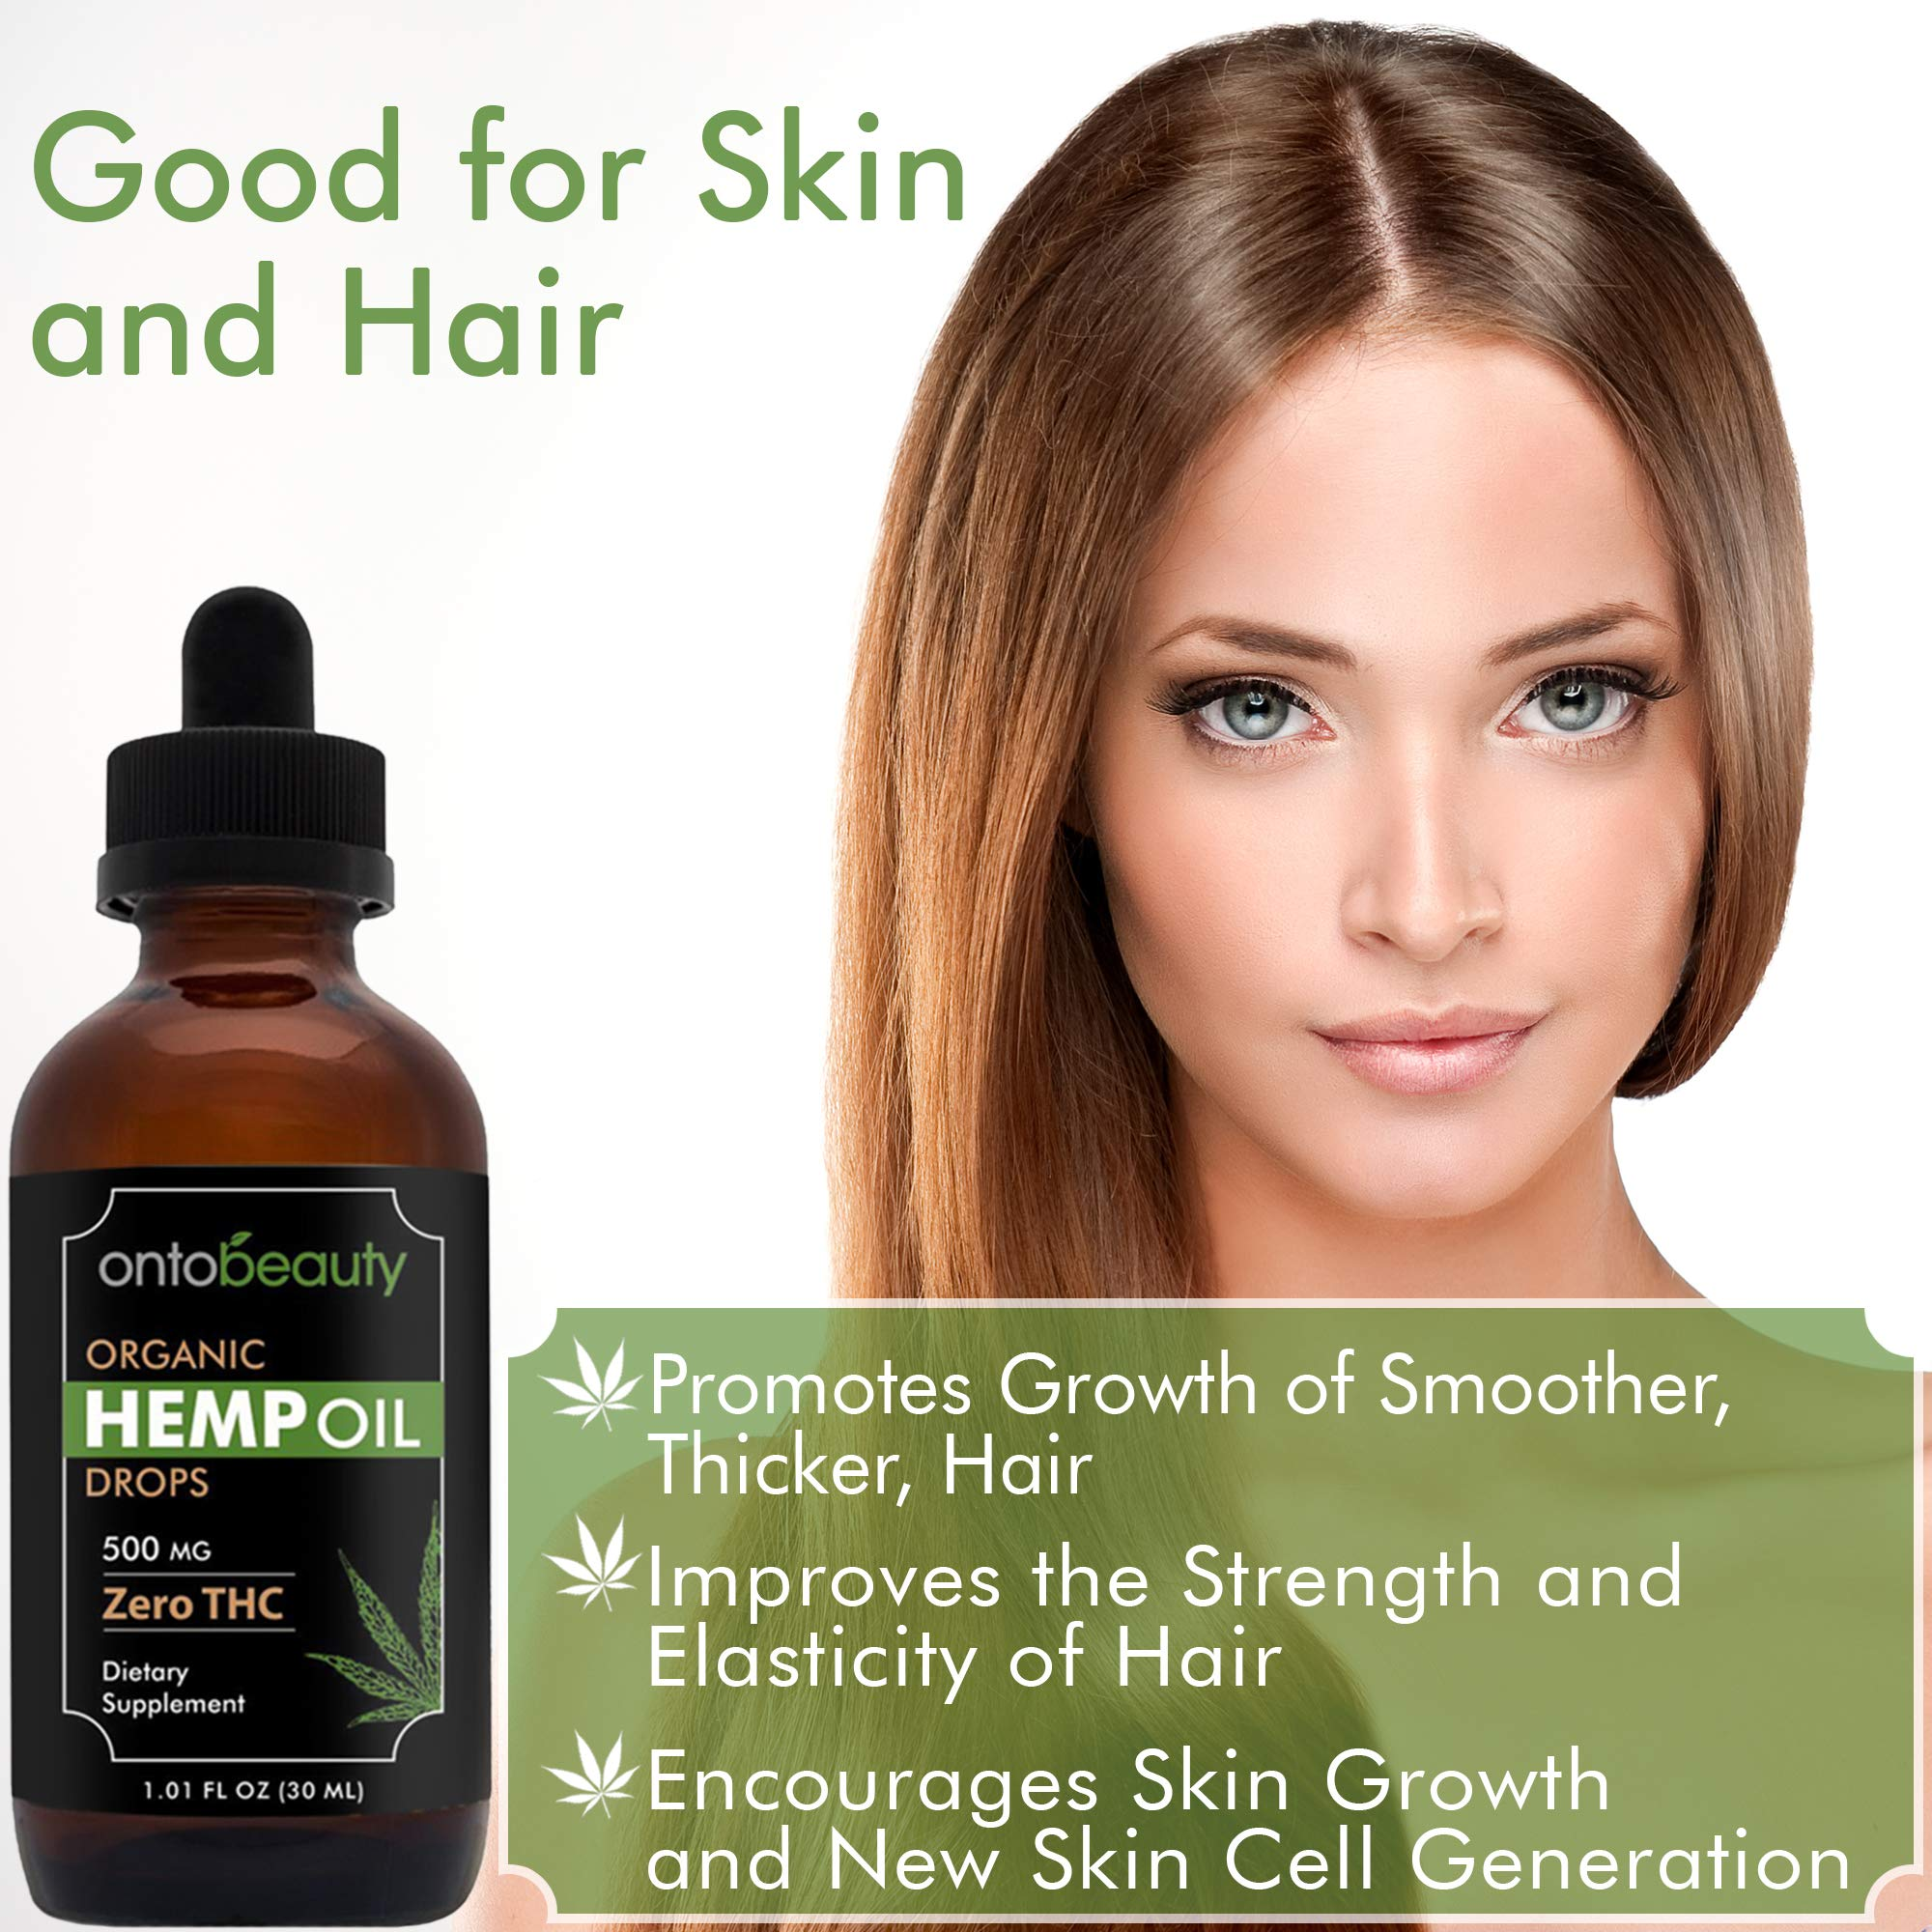 Hemp Oil Drops 500 Mg, Anti Anxiety Support, Reduces Stress and Pain, Improves Sleep, Mood, Good for Skin and Hair, Improves Overall Health